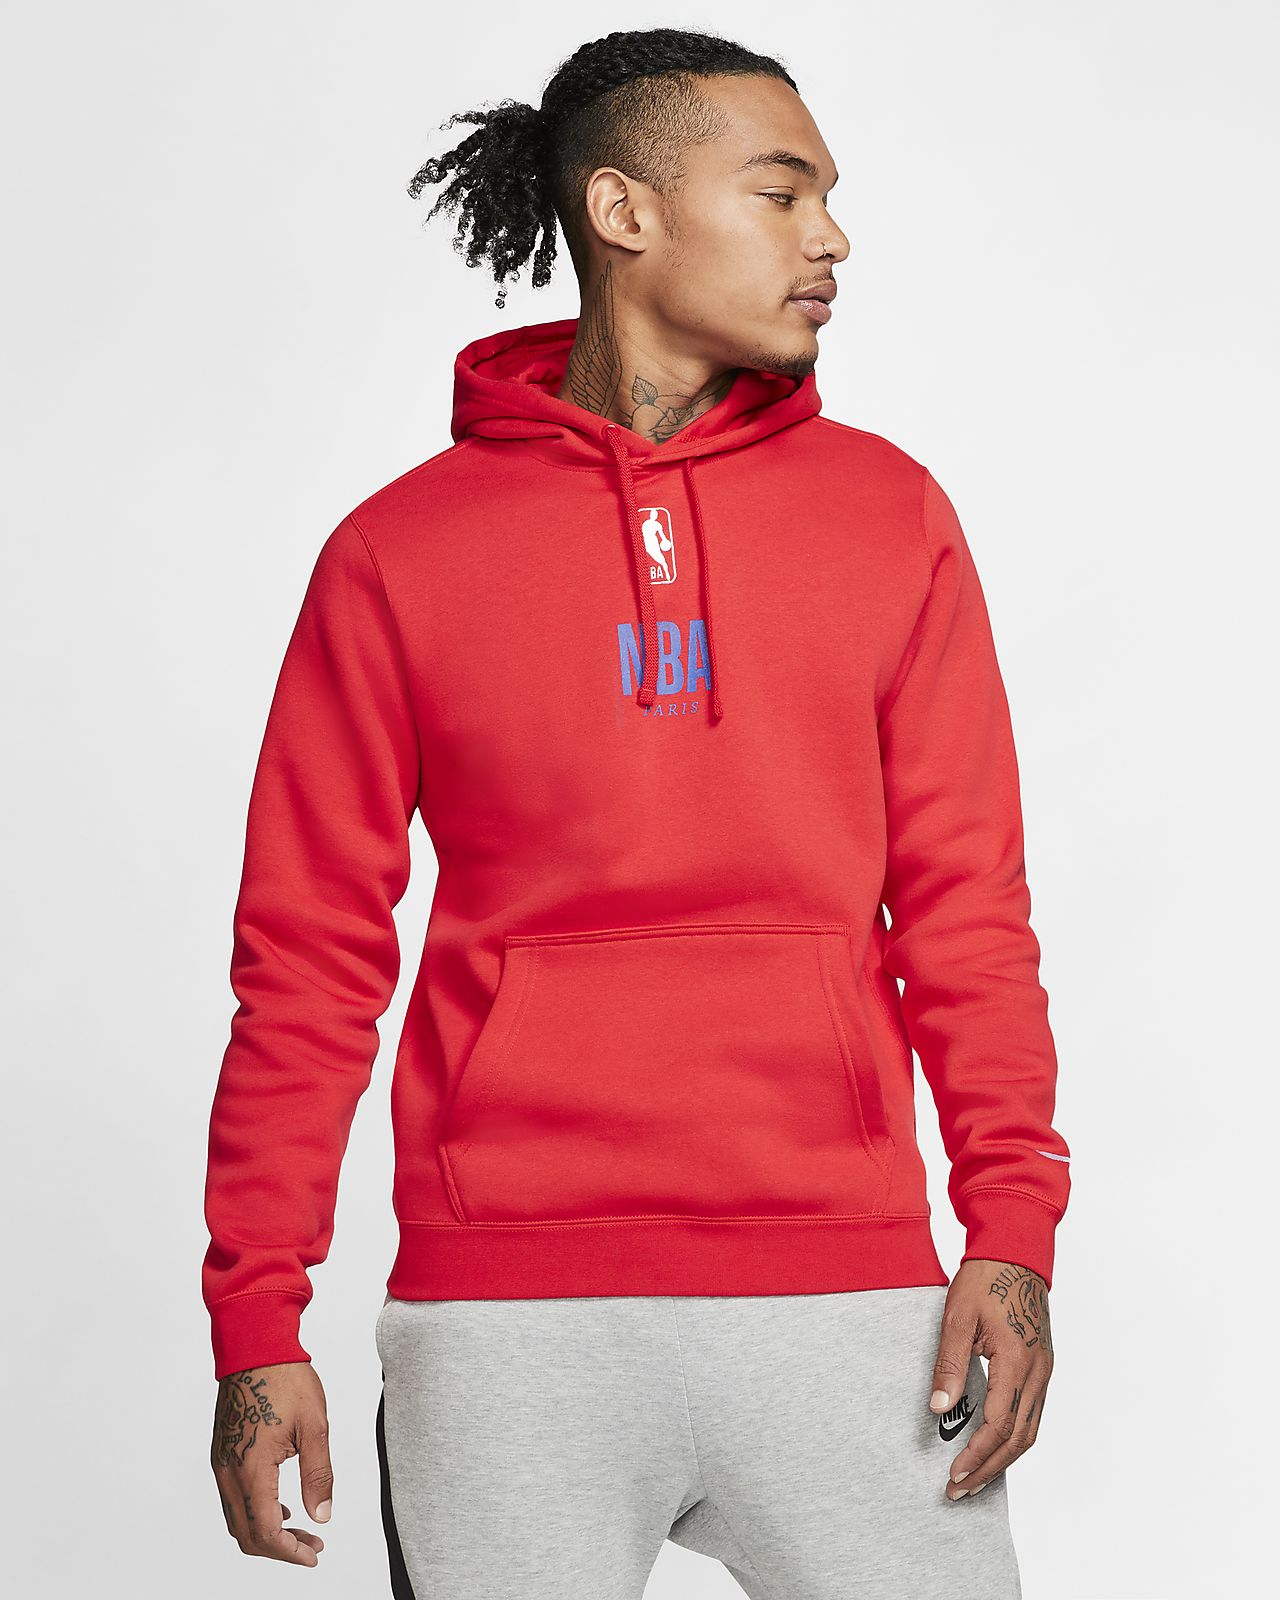 Nike Courtside Paris NBA Pullover für Herren